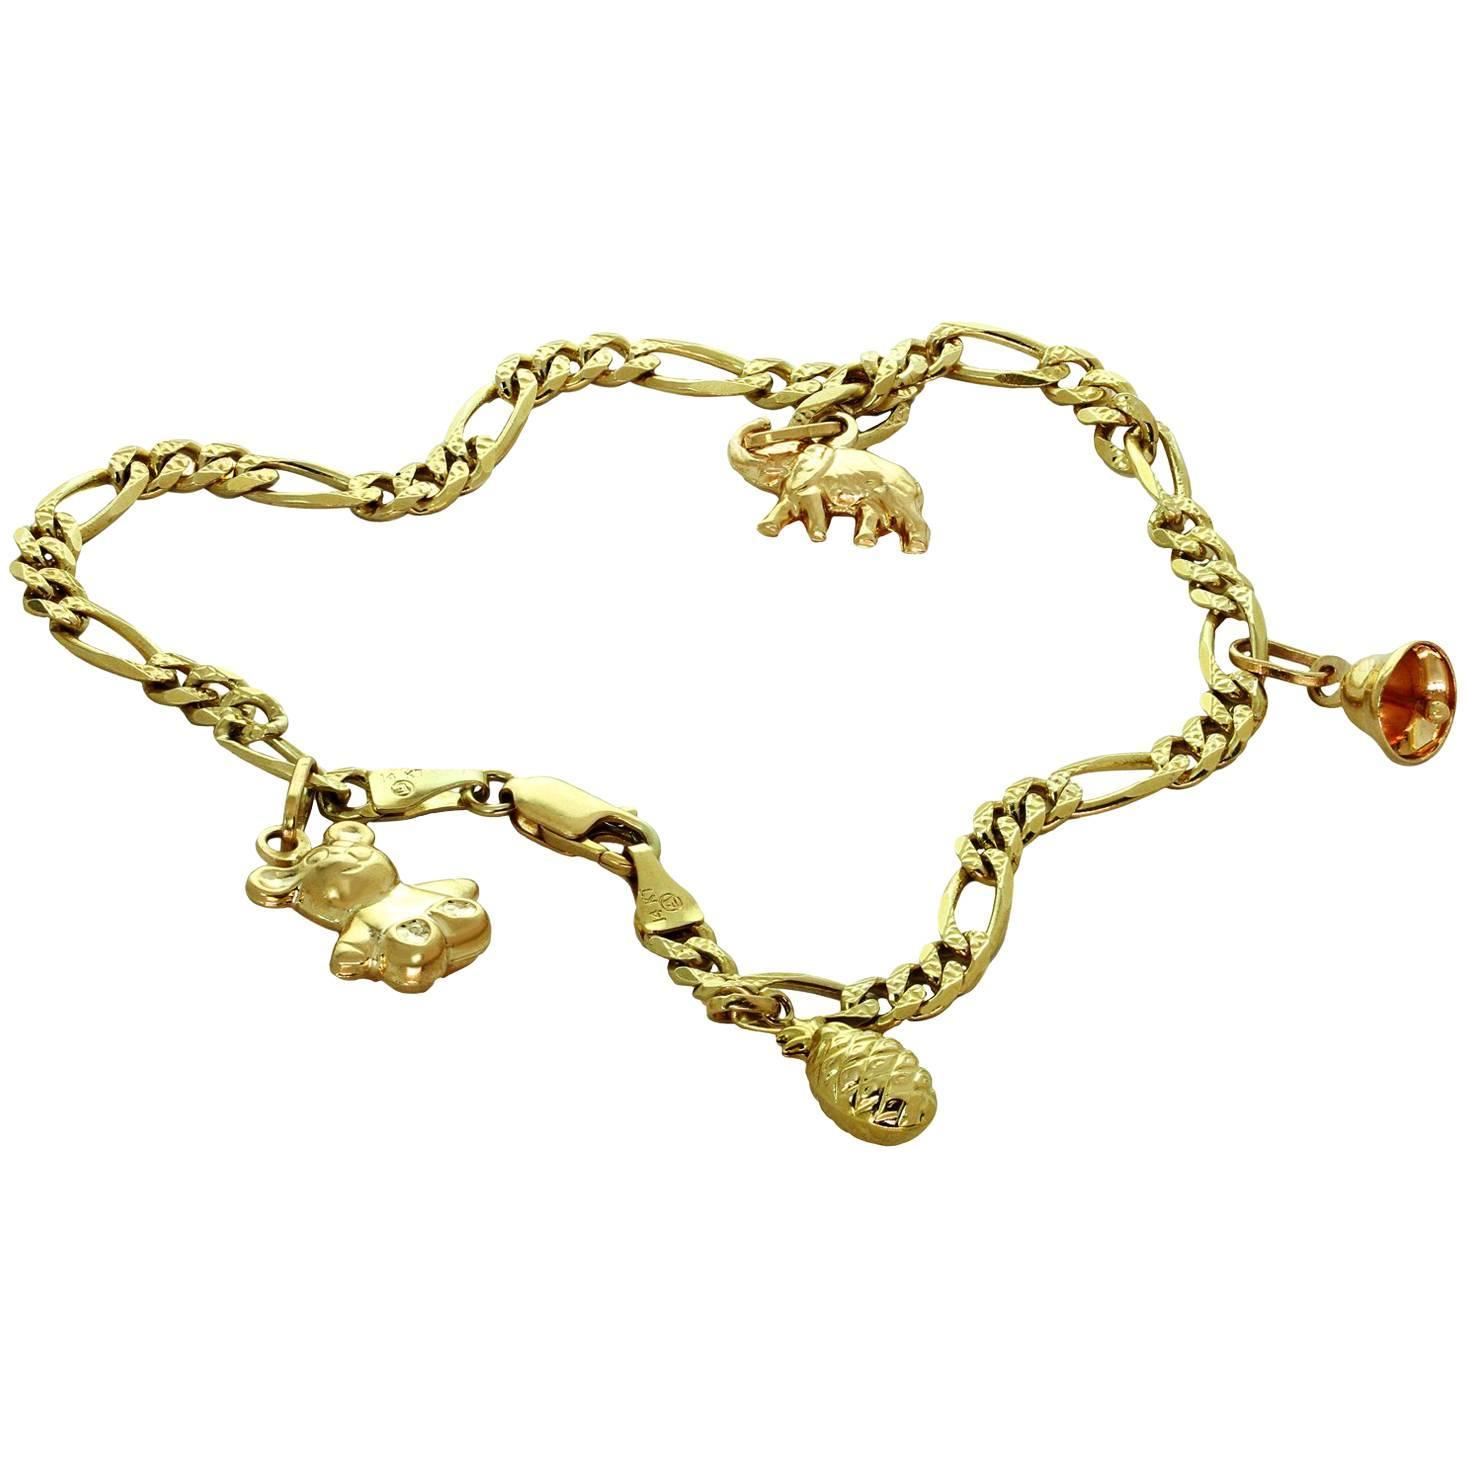 today inch overstock gold saturn singapore free jewelry karat yellow anklet shipping fremada watches mm product